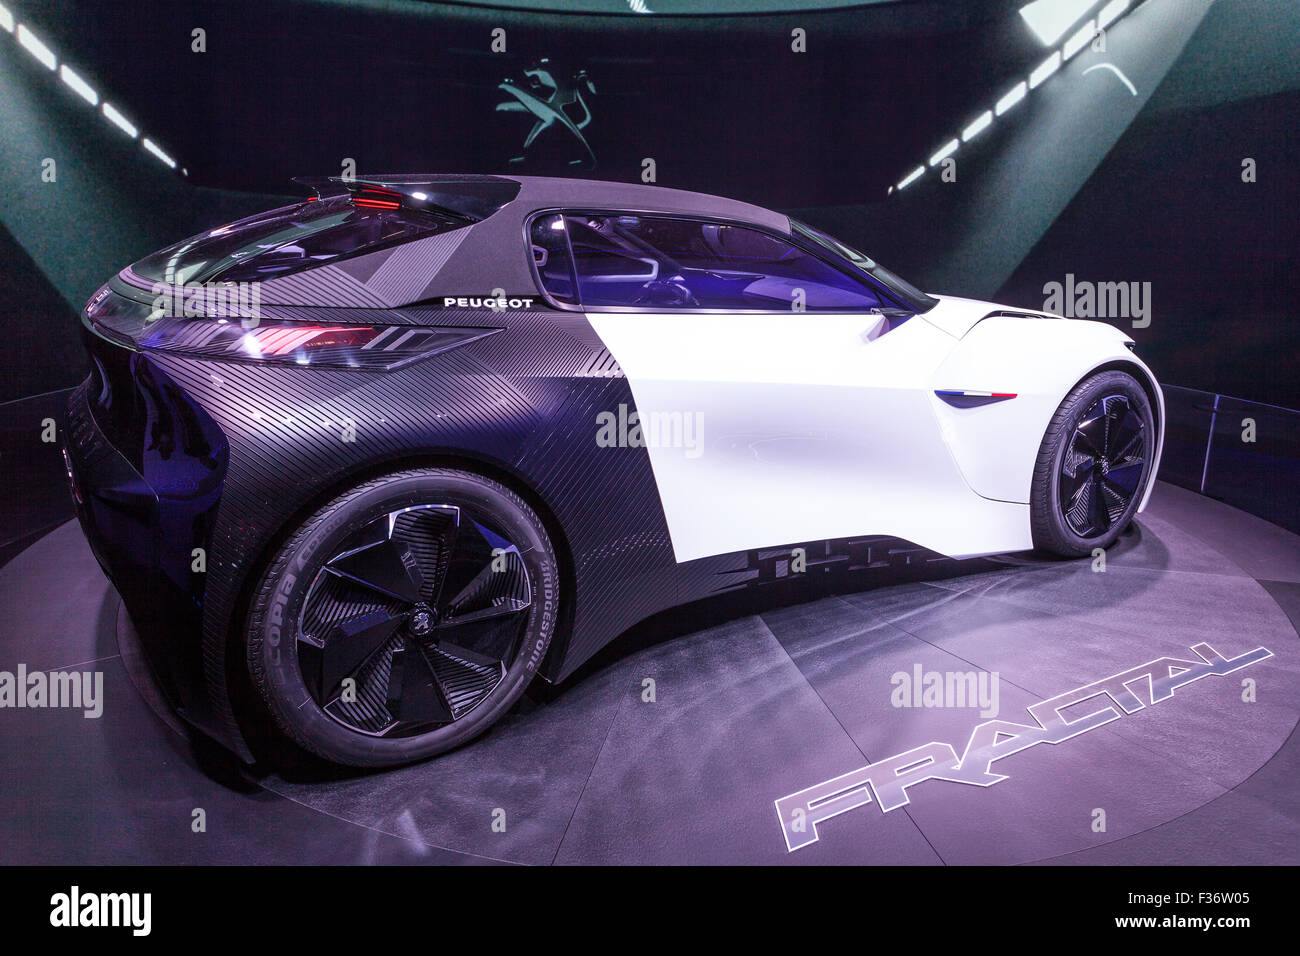 Peugeot Fractal Concept Car at the IAA International Motor Show 2015 - Stock Image